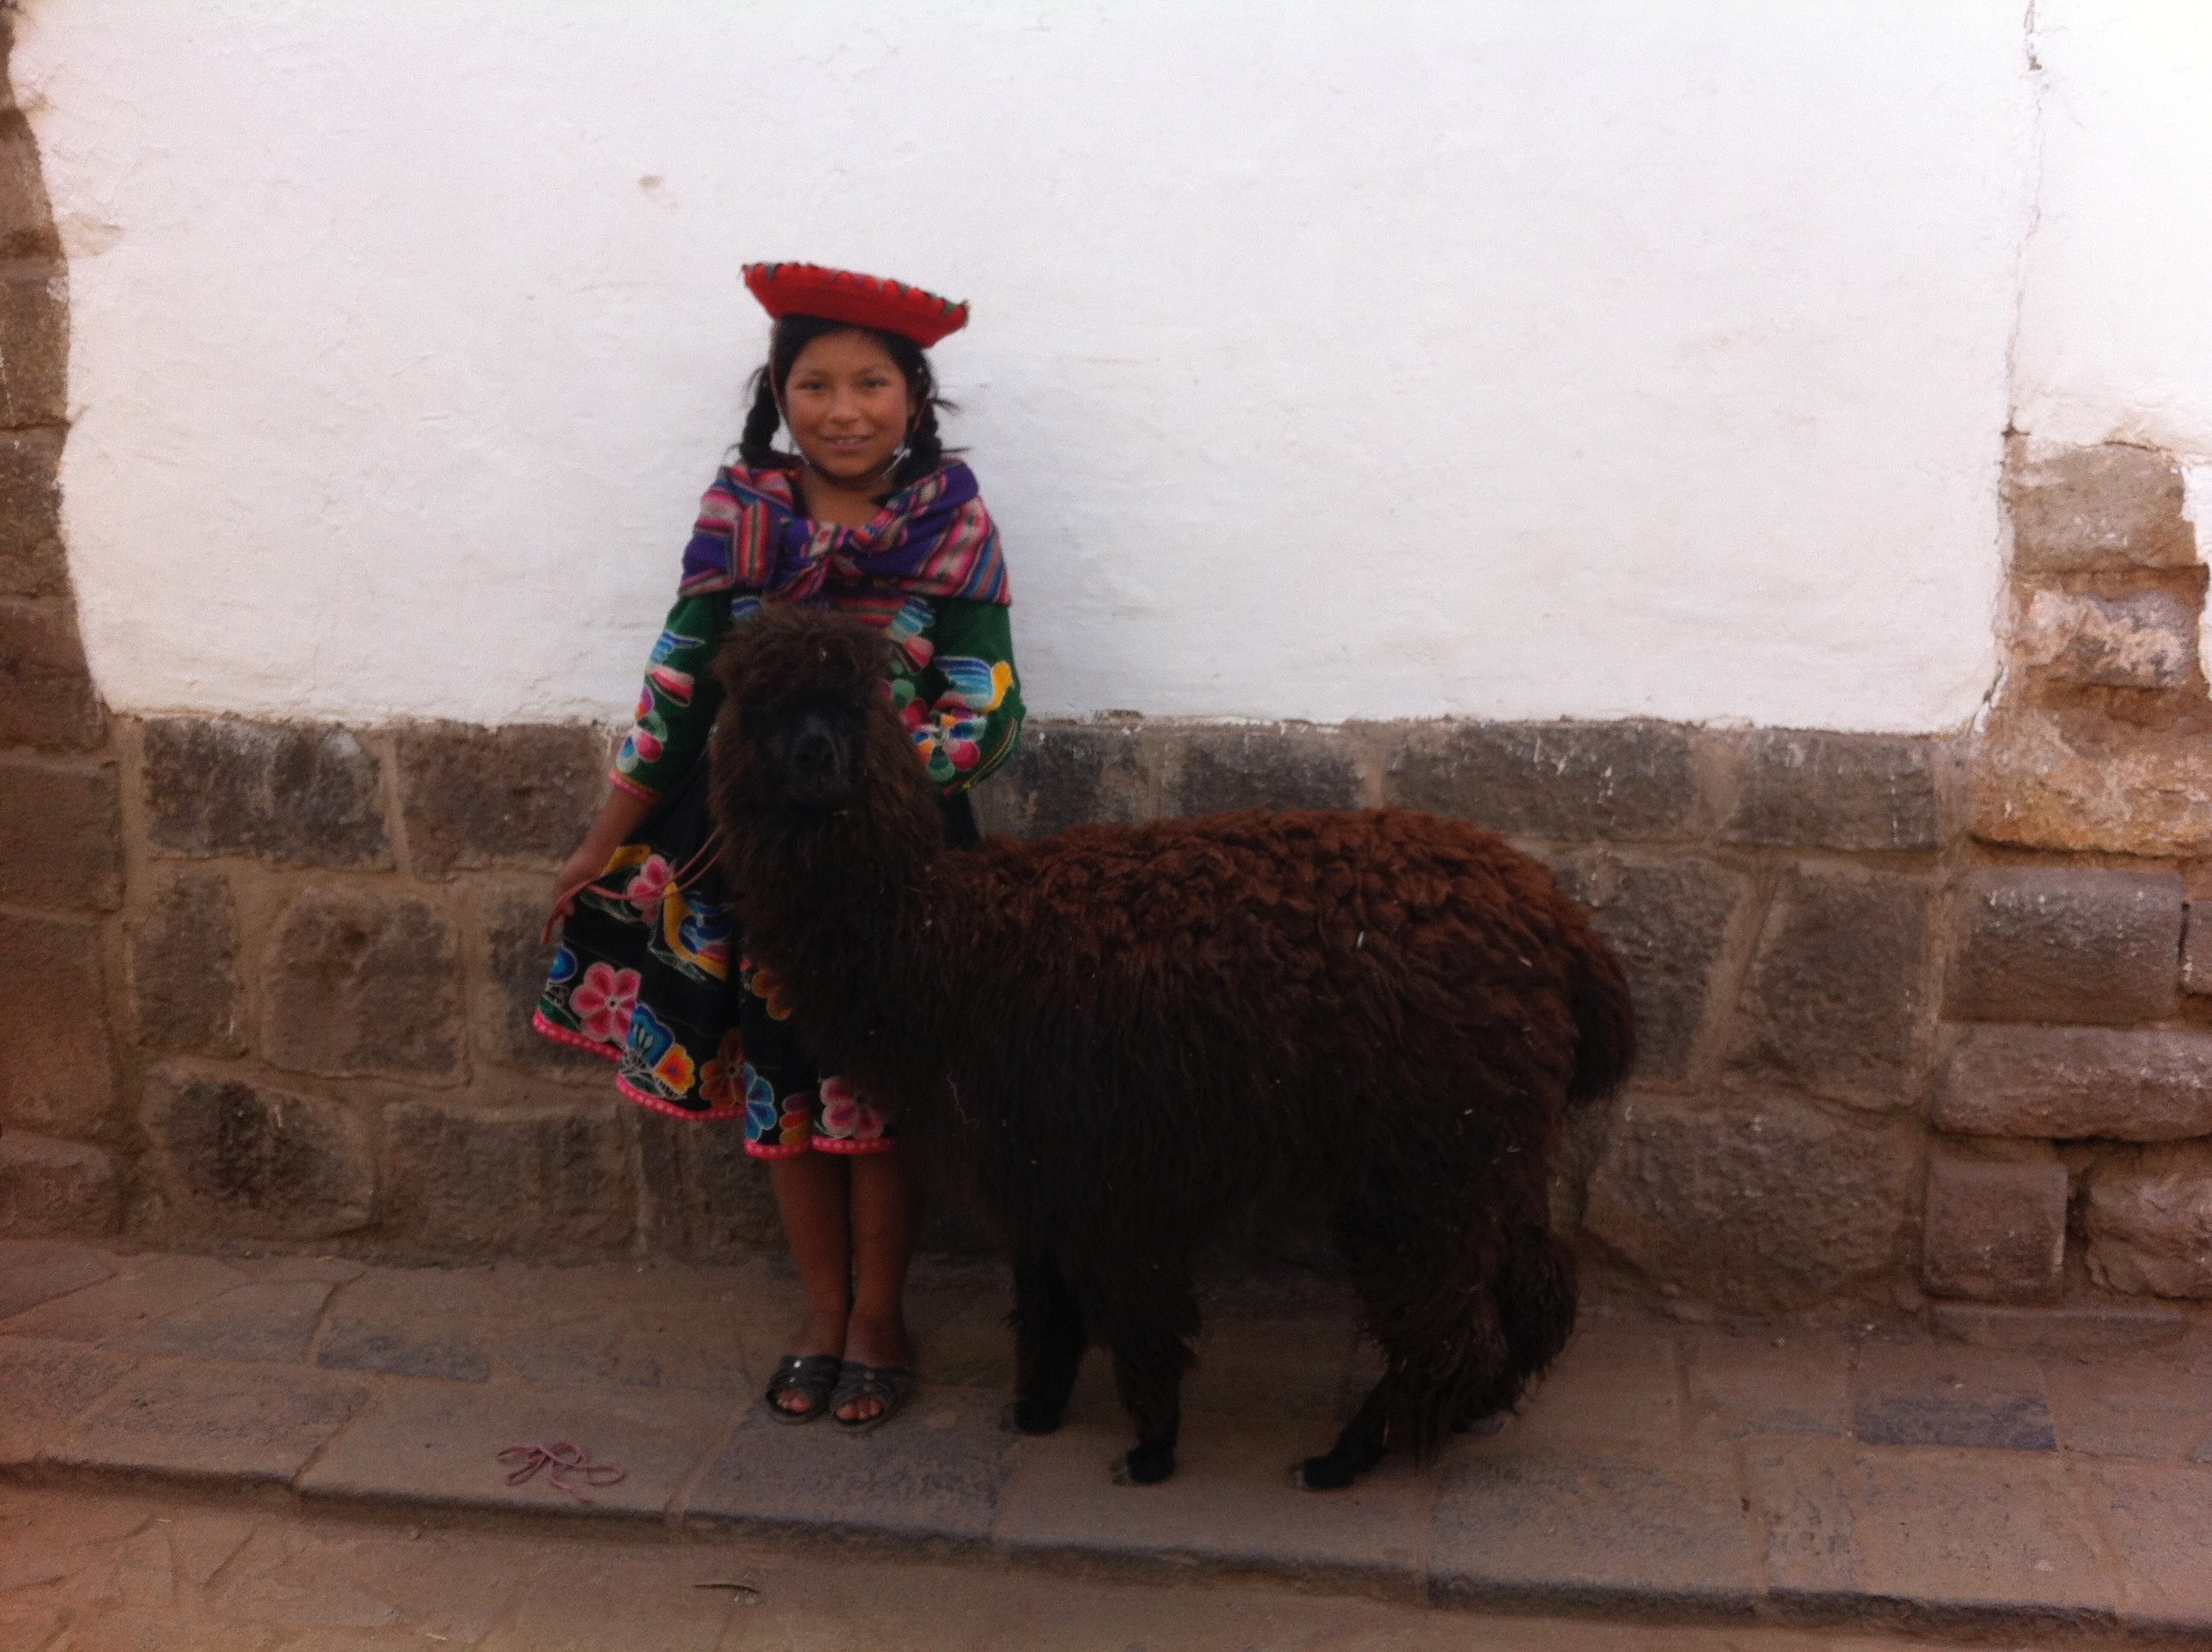 Running a business of posing for tourists in Cusco.